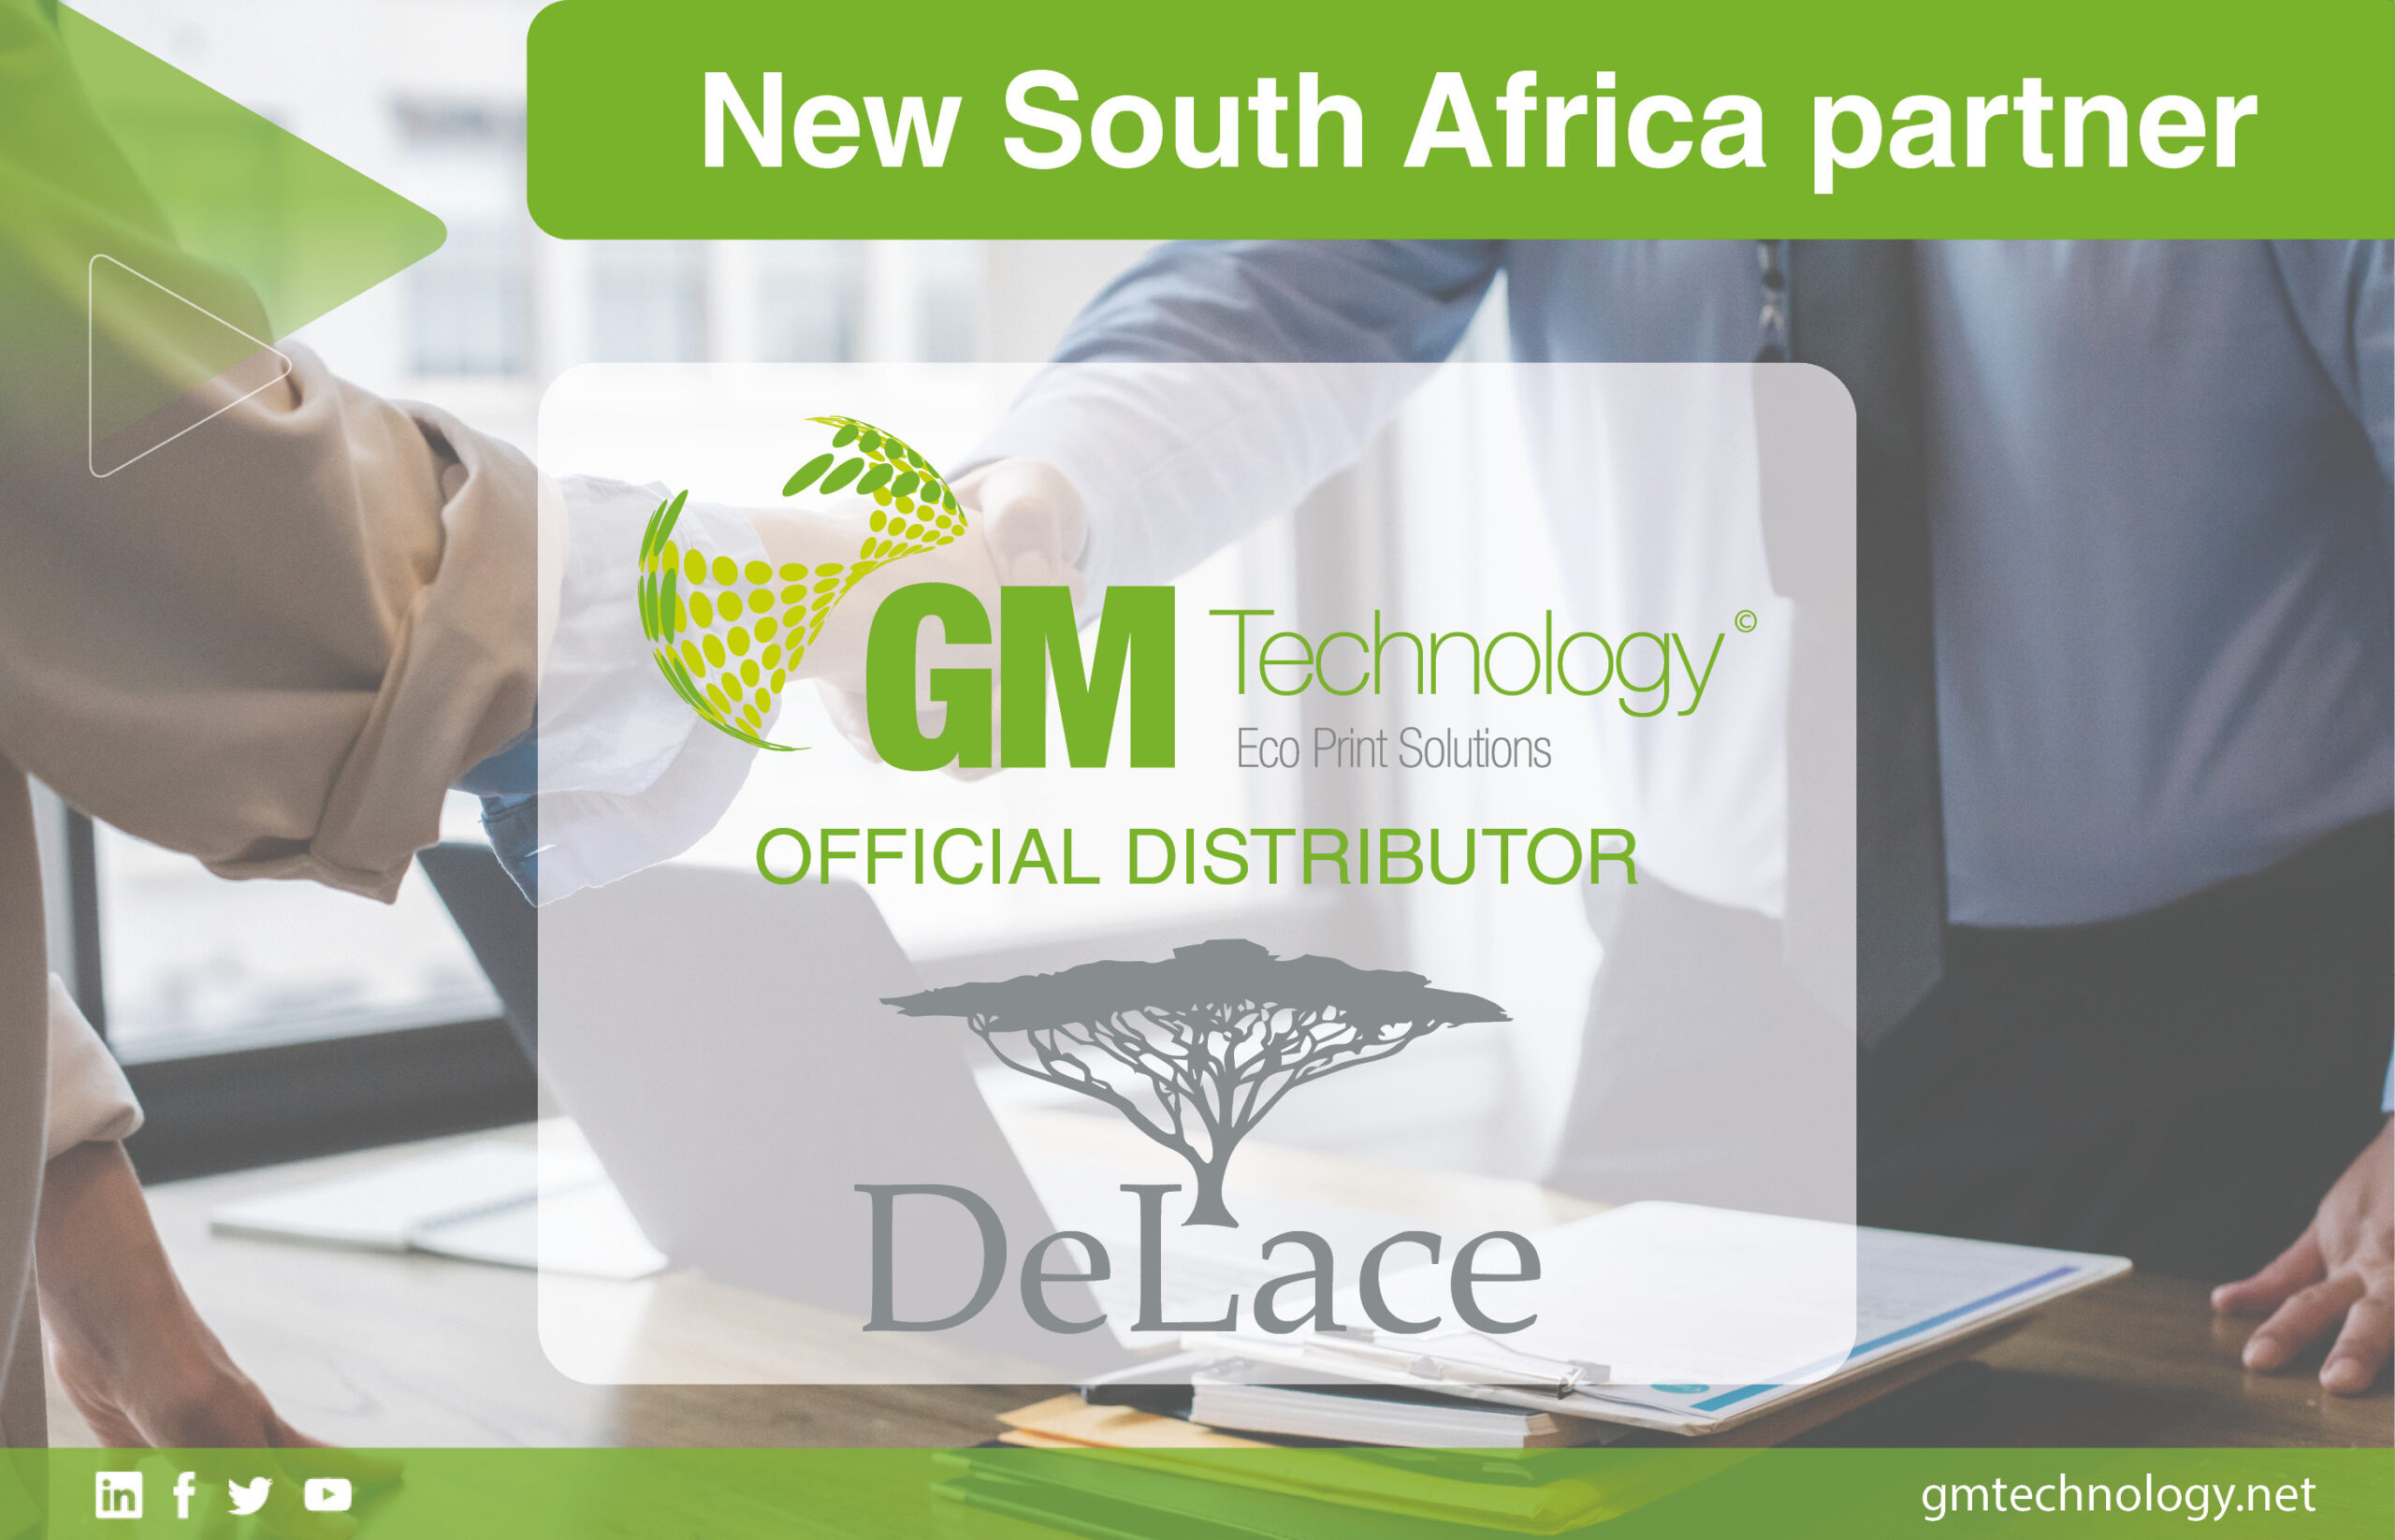 GM Technology introduces new South Africa partner